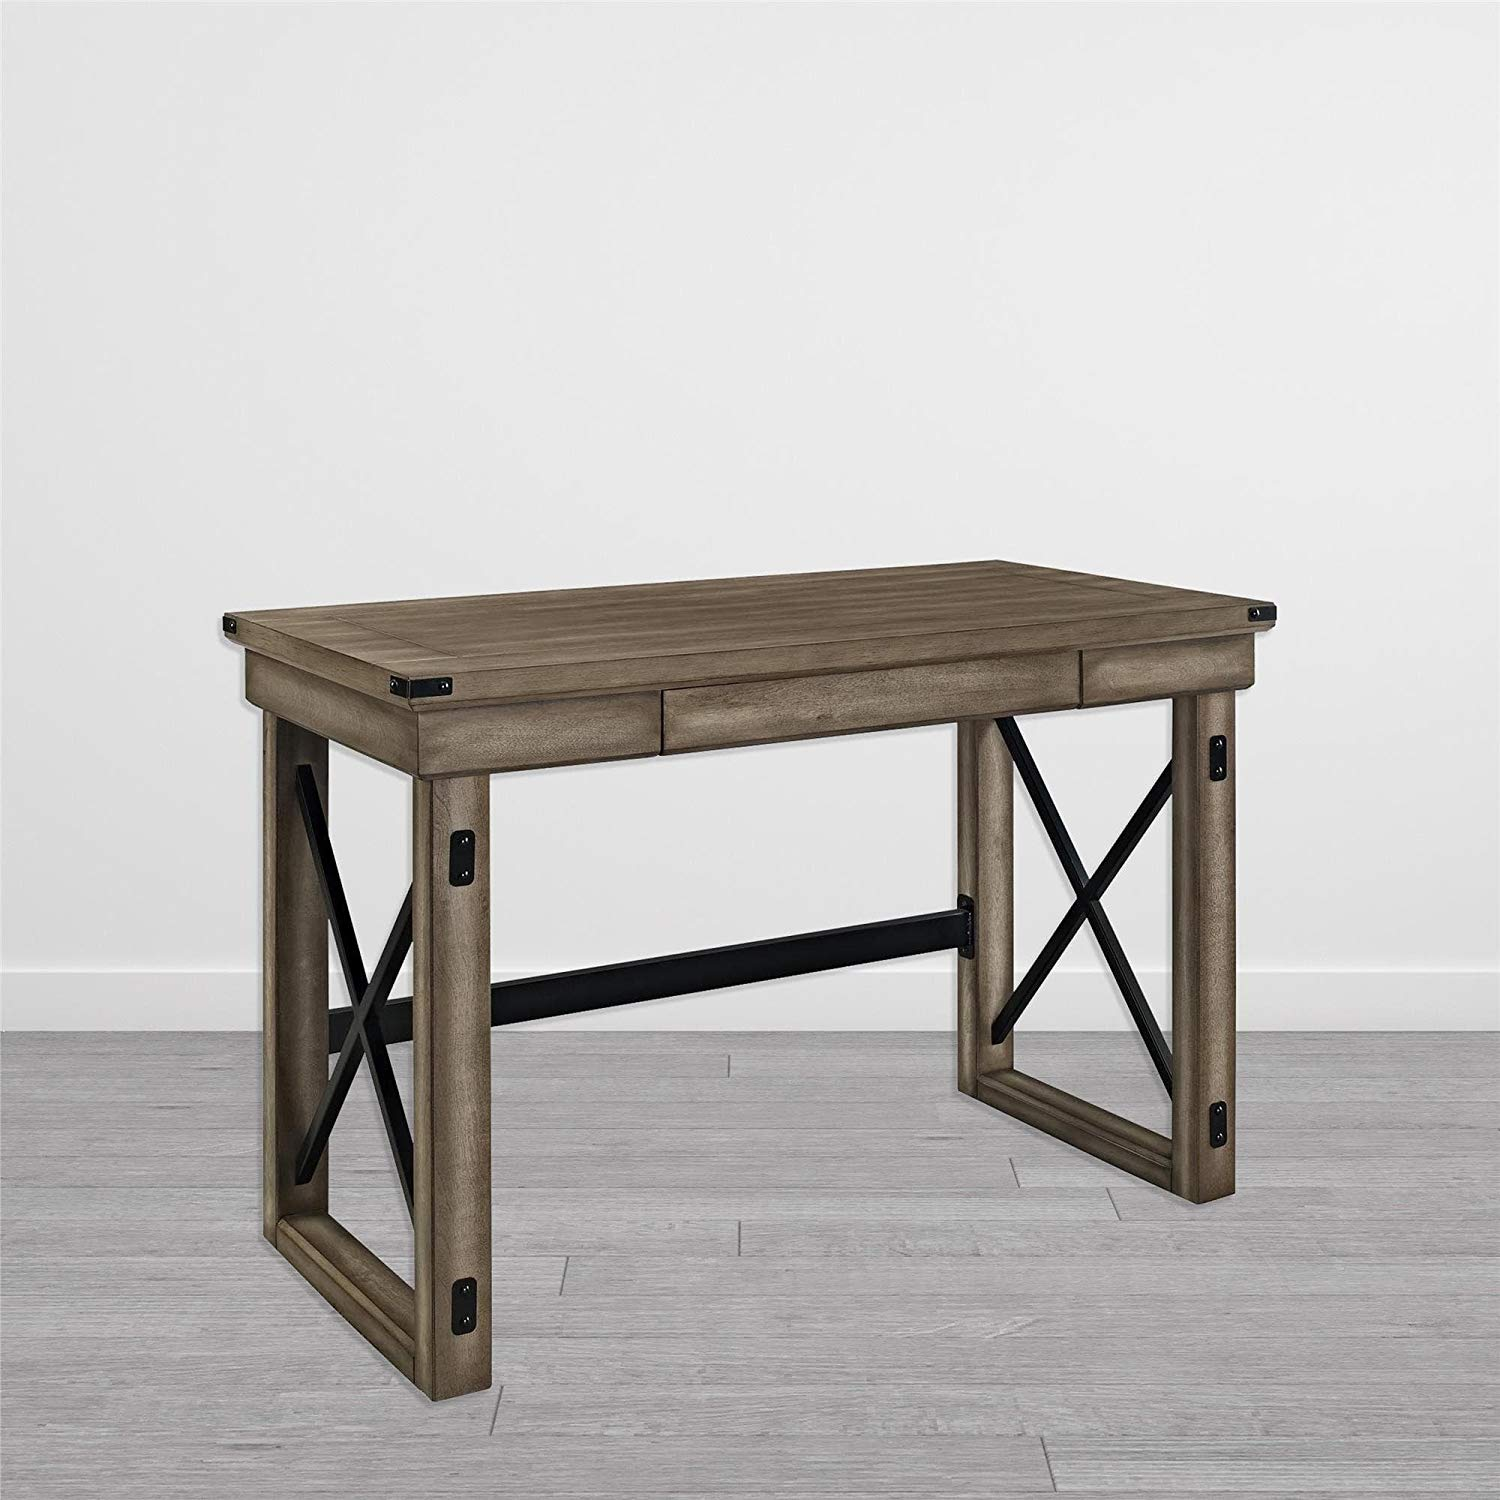 Sturdy Rustic Style Veneer Desk, Crisscross Pattern, Wood Veneer and Metal Construction, Solid and Durable, Assembly Required, Light Brown Woodgrain Finish with Gray Undertones and Black Accents